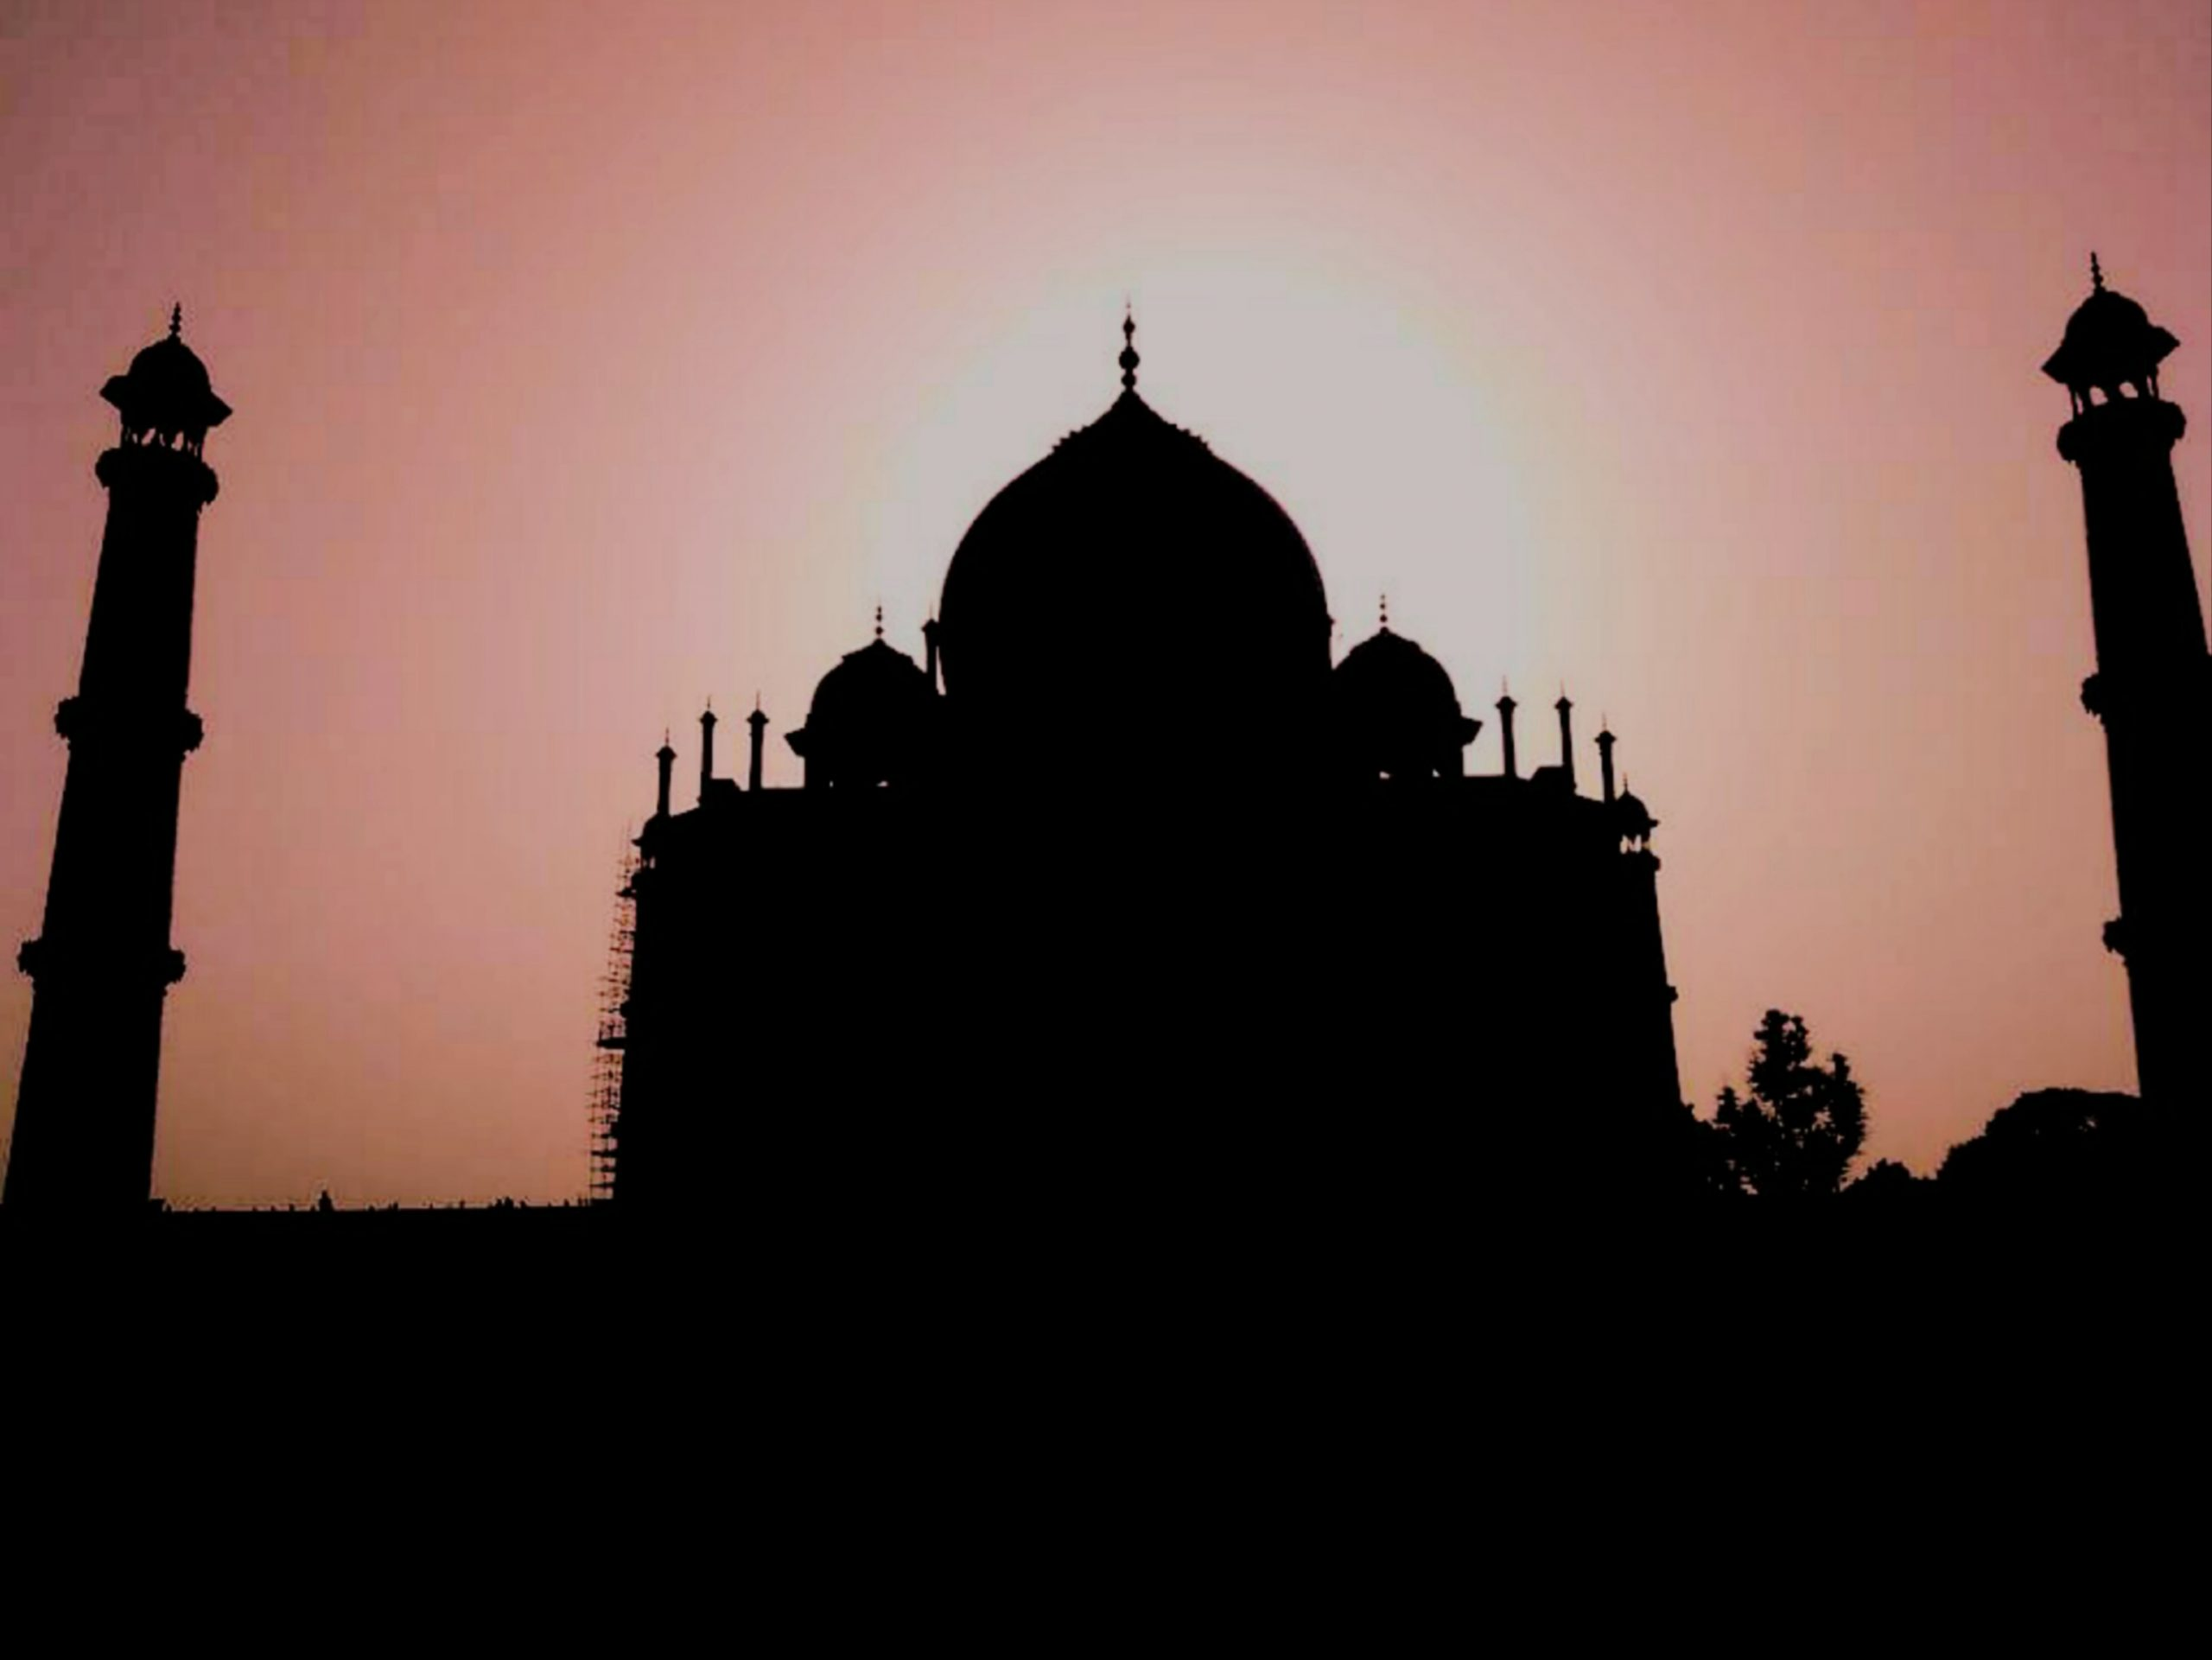 Silhouette of the Taj Mahal during sunset.